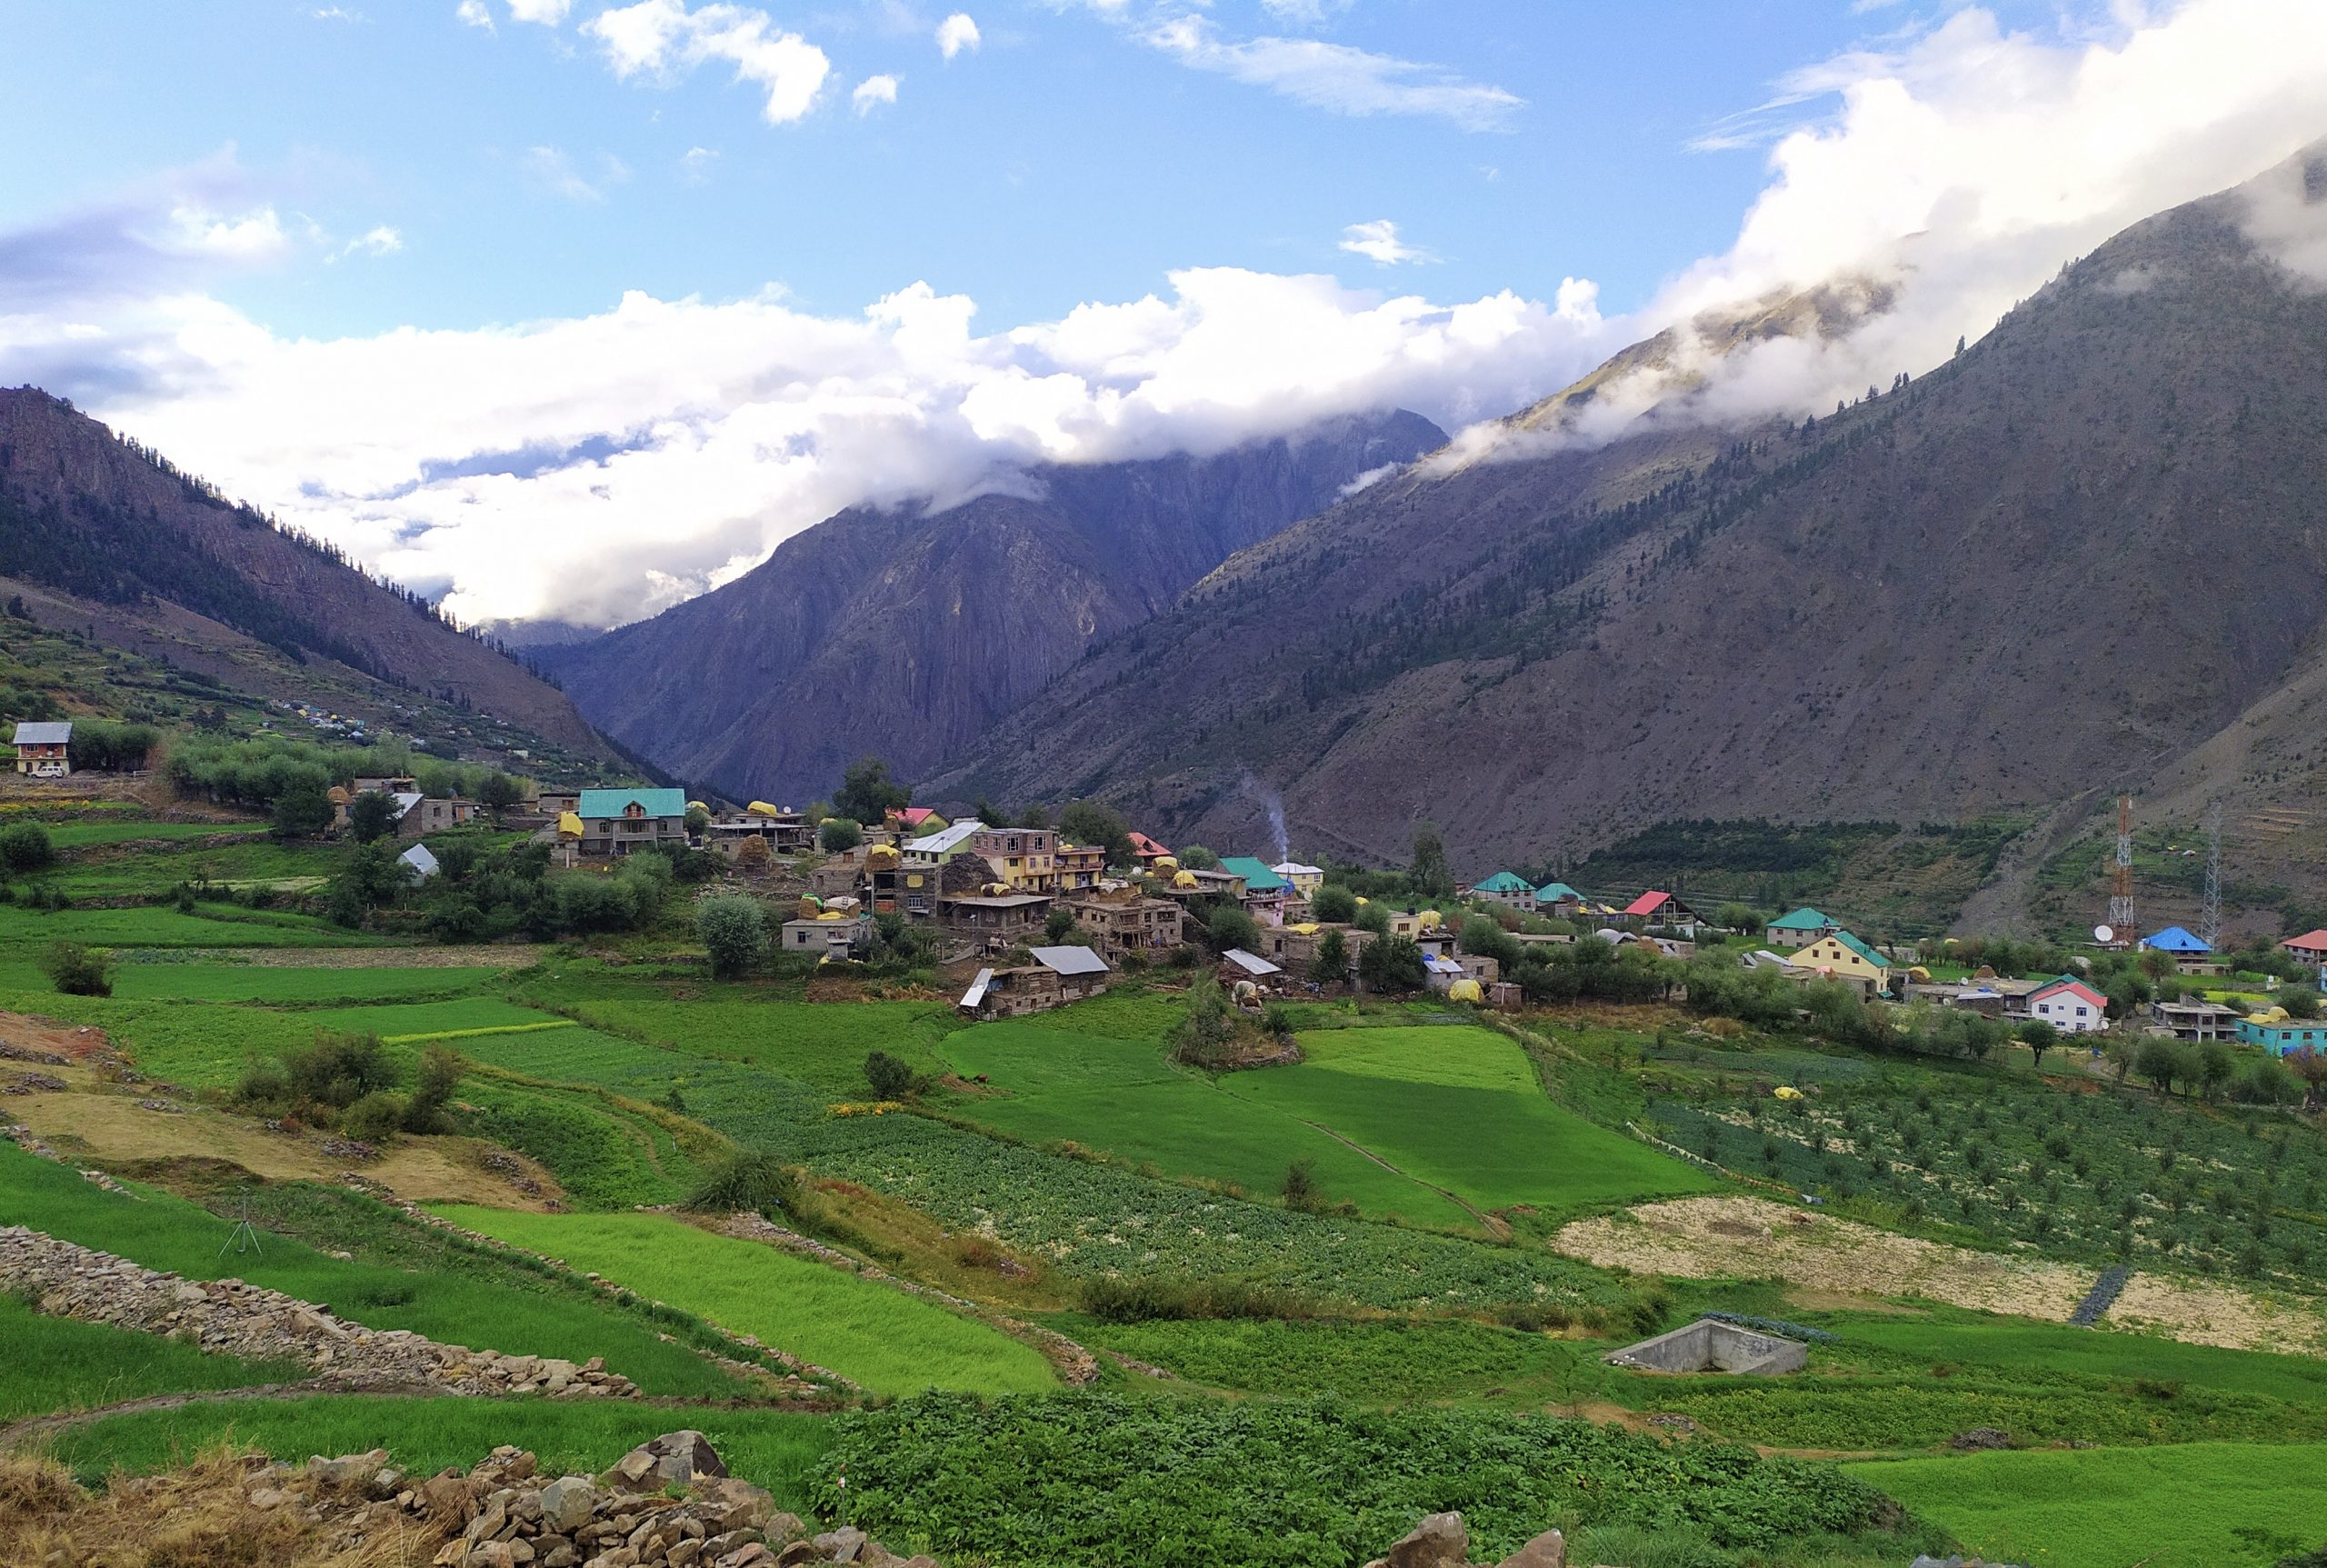 Panoramic view of Triloknath village with mountains in background